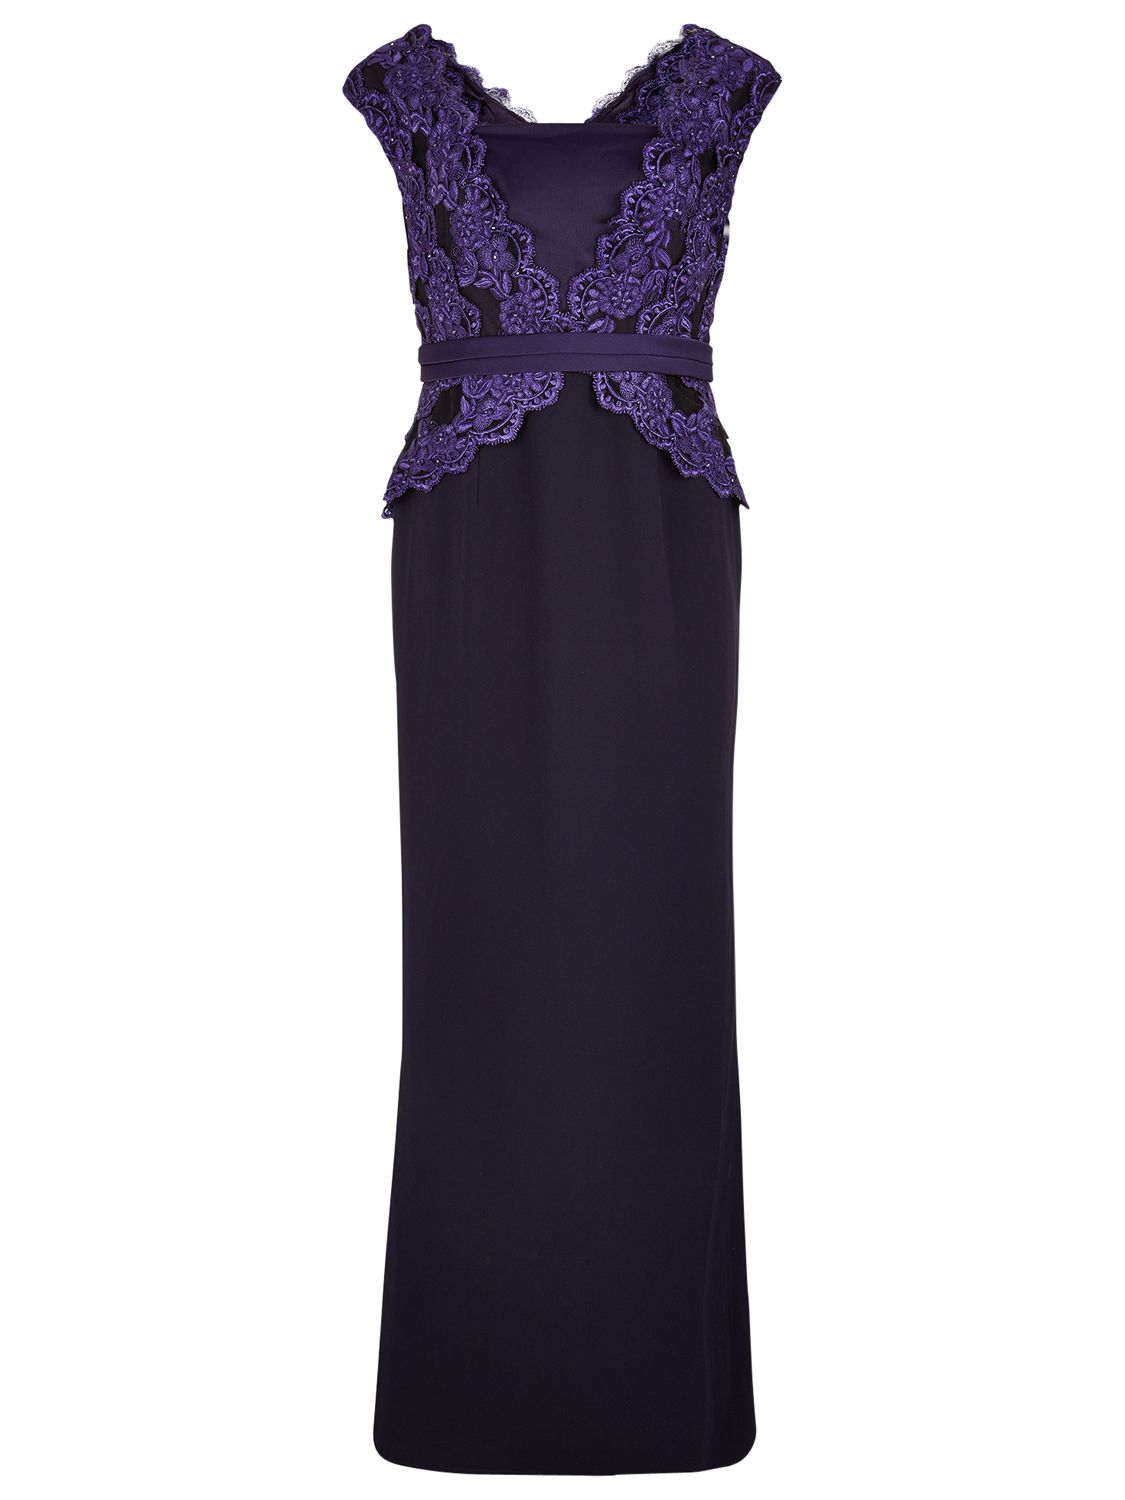 jacques vert lace gown, jacques, vert, lace, gown, jacques vert, 8|10|18|16|14, clearance, womenswear offers, womens dresses offers, special offers, women, inactive womenswear, new reductions, party outfits, lace dress, womens dresses, evening gowns, 1709212